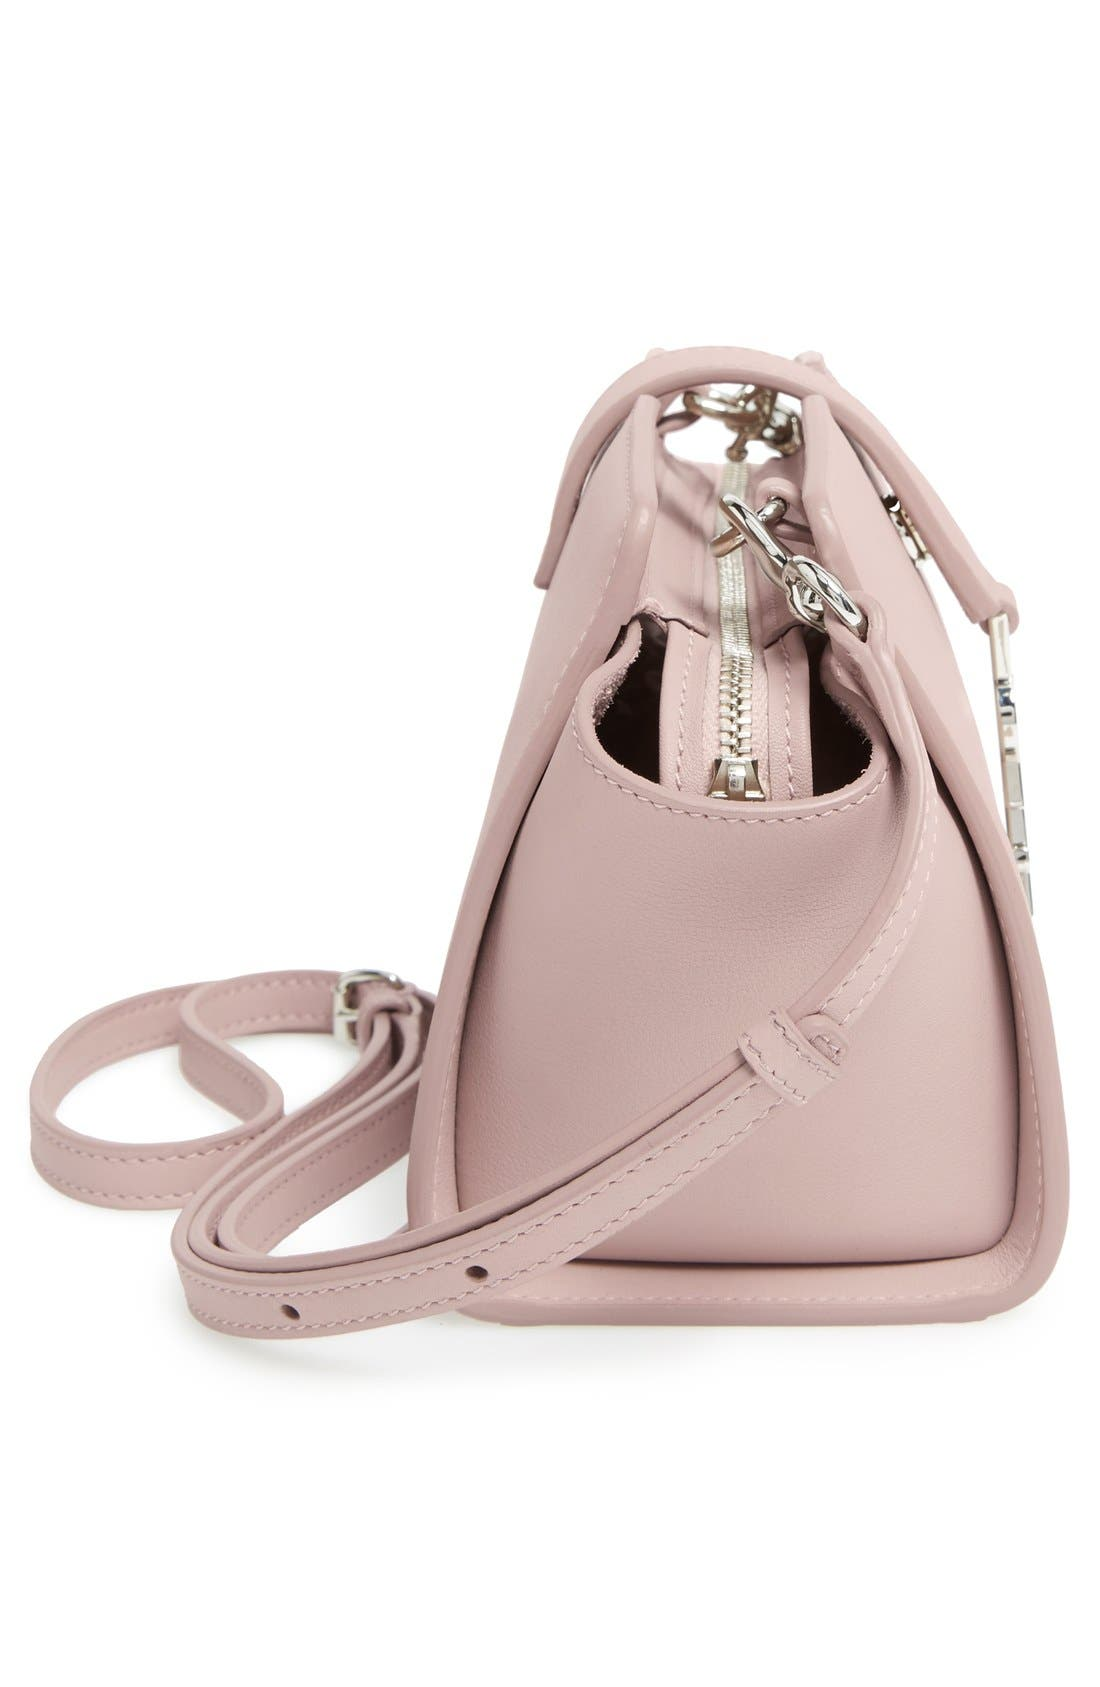 Toy Cabas Leather Crossbody Bag,                             Alternate thumbnail 5, color,                             Rose Antic